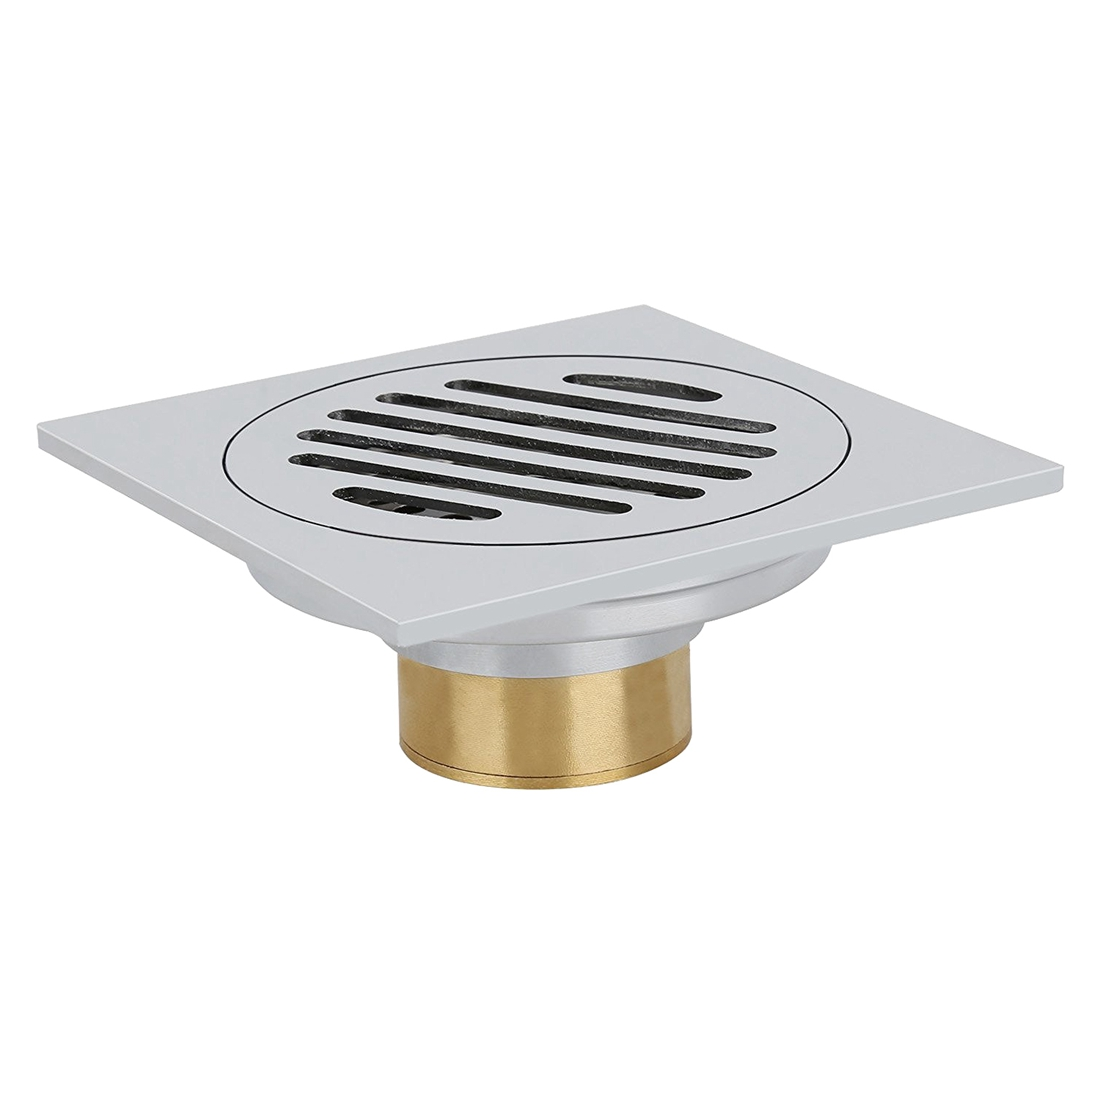 stainless steel floor drainage shower drainage bath drainage odor trap shower drain 10 x 10cm